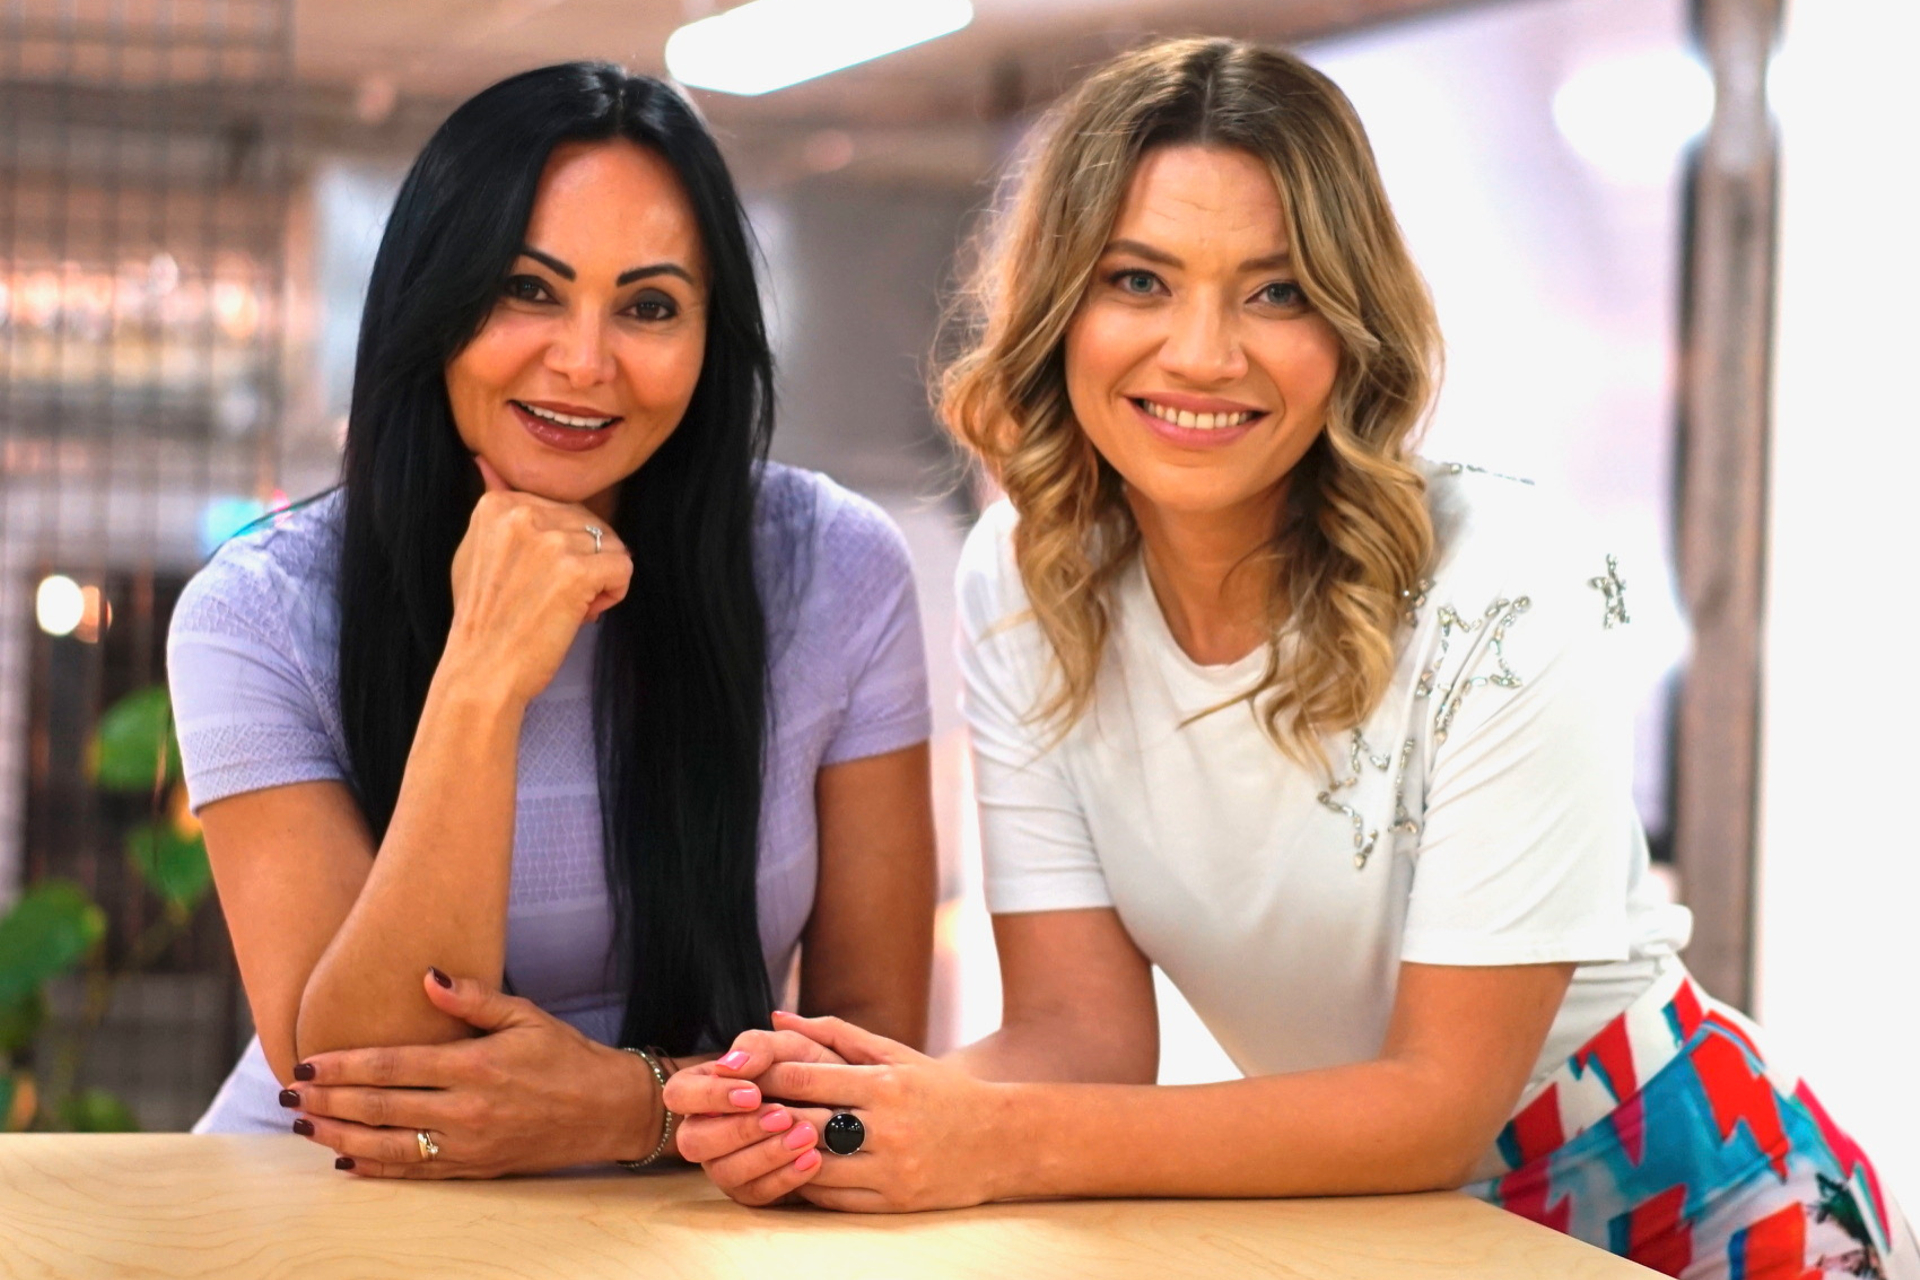 sales coach anastasha grace deyour and ksenia demidova